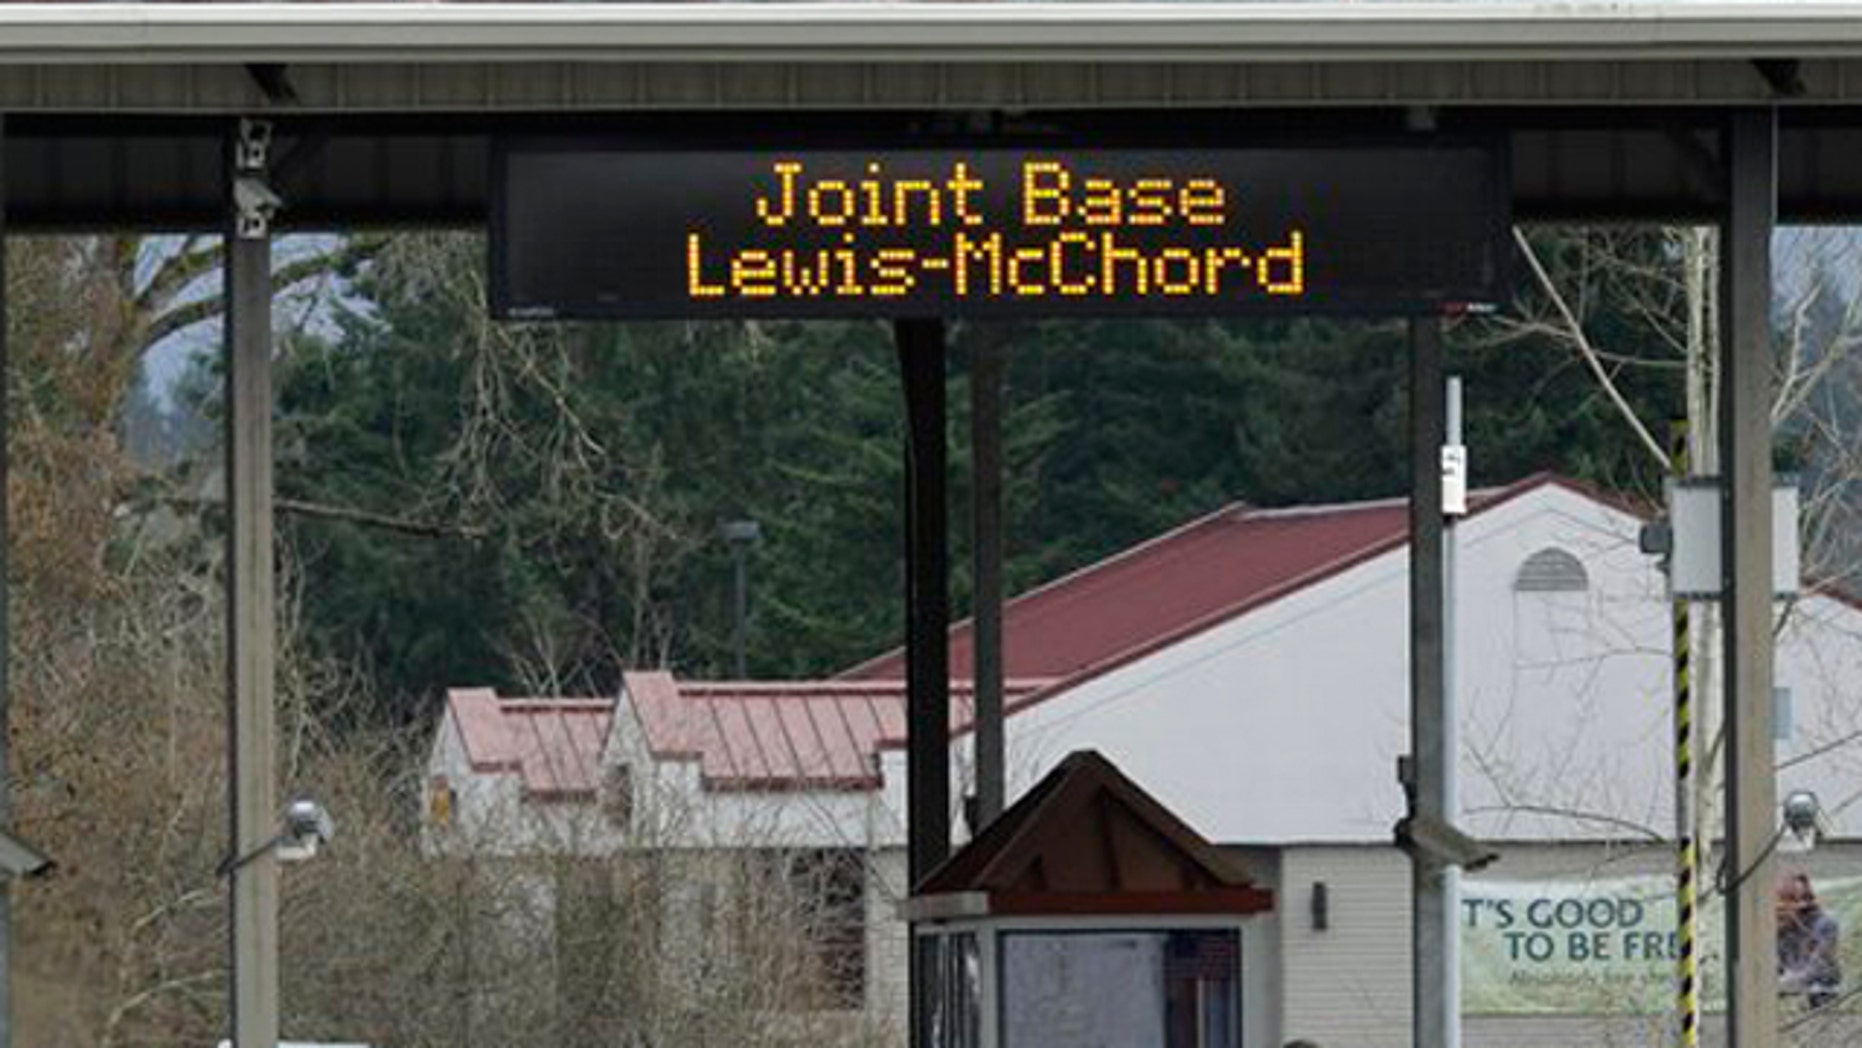 Mar. 11, 2012: A guarded gate at Joint Base Lewis McChord is shown.